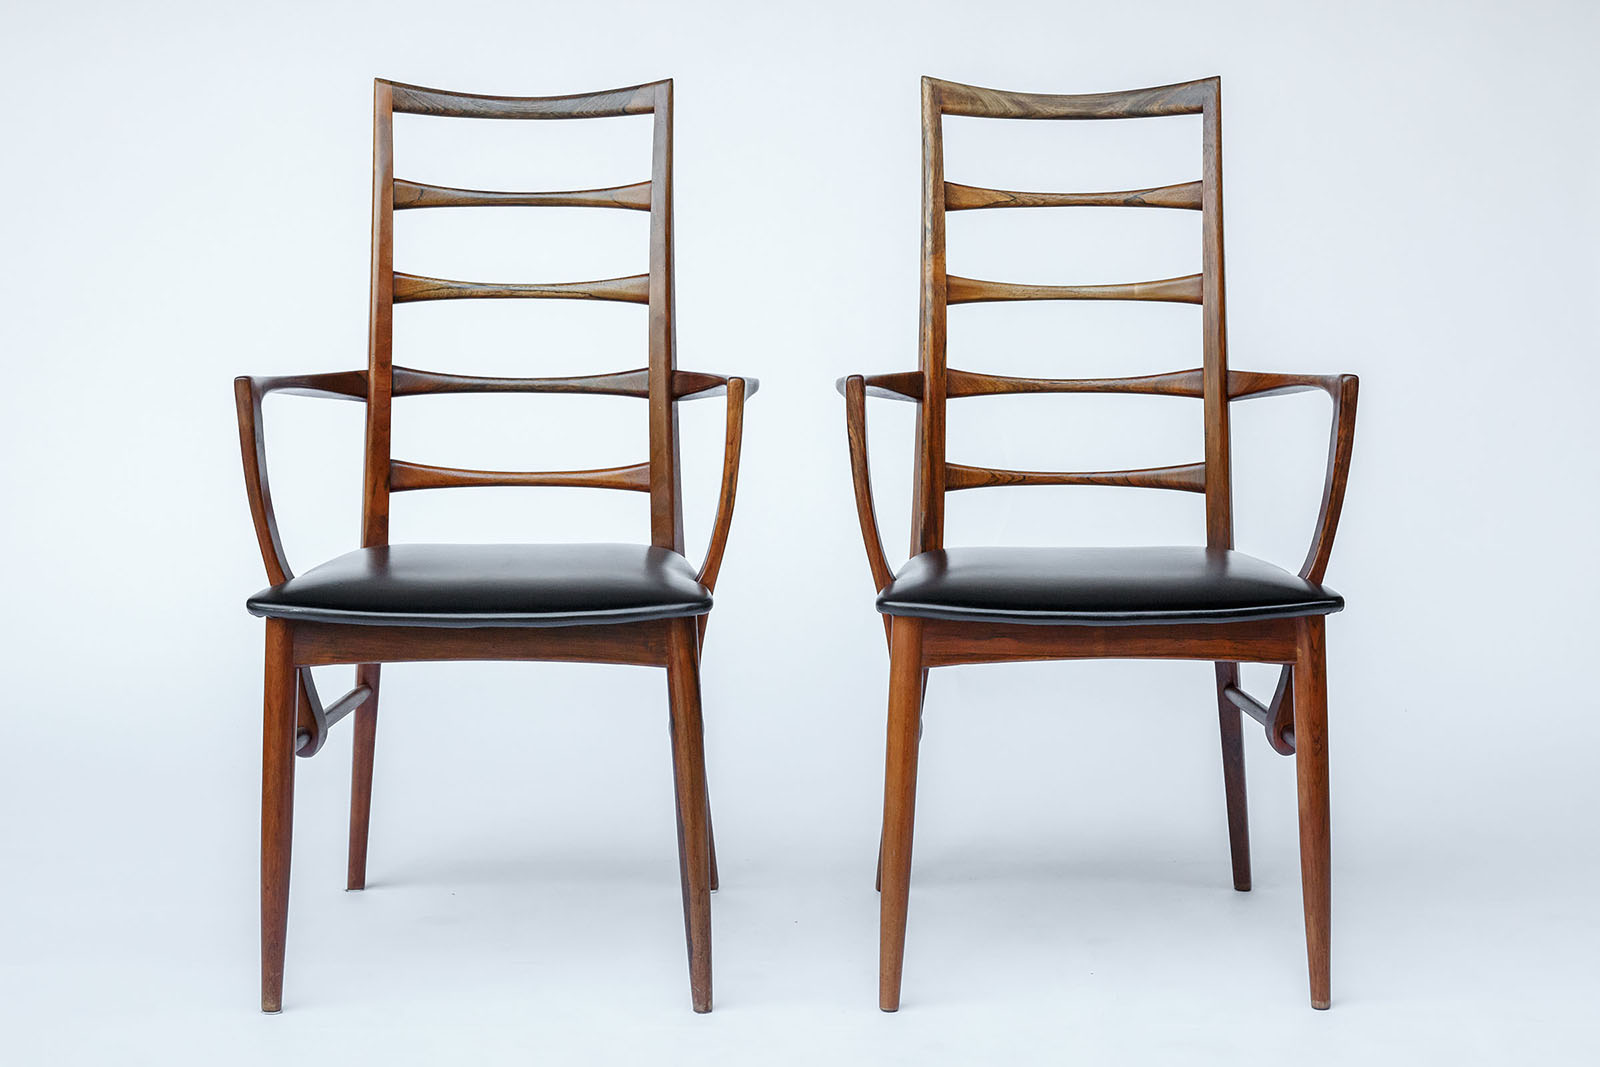 Armchair by Kofod Larsen for sale